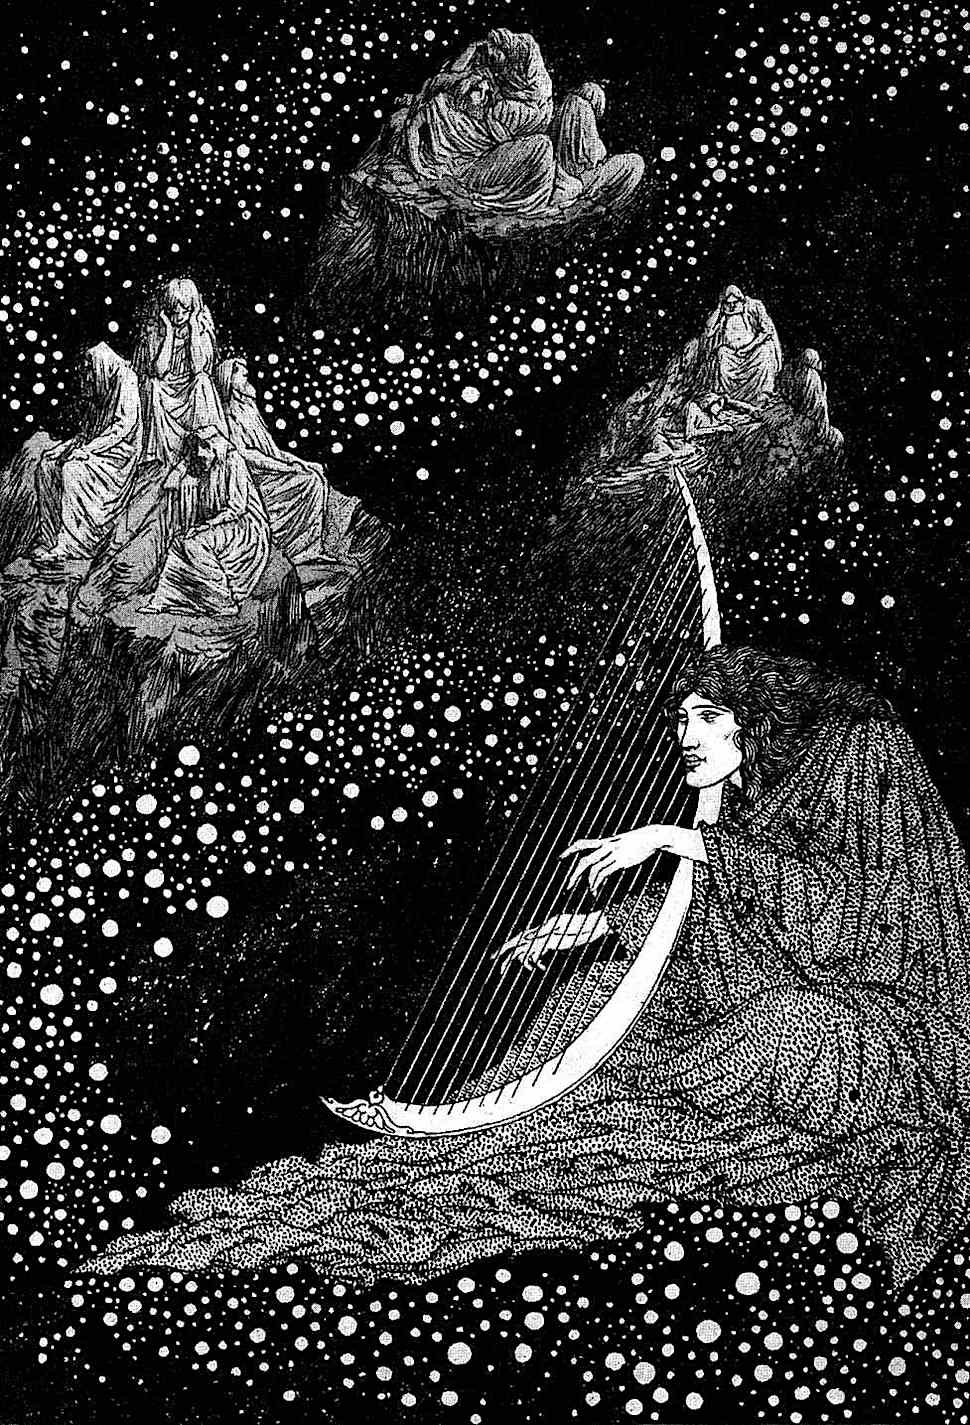 a Sidney Sime illustration of a harpist in the sky